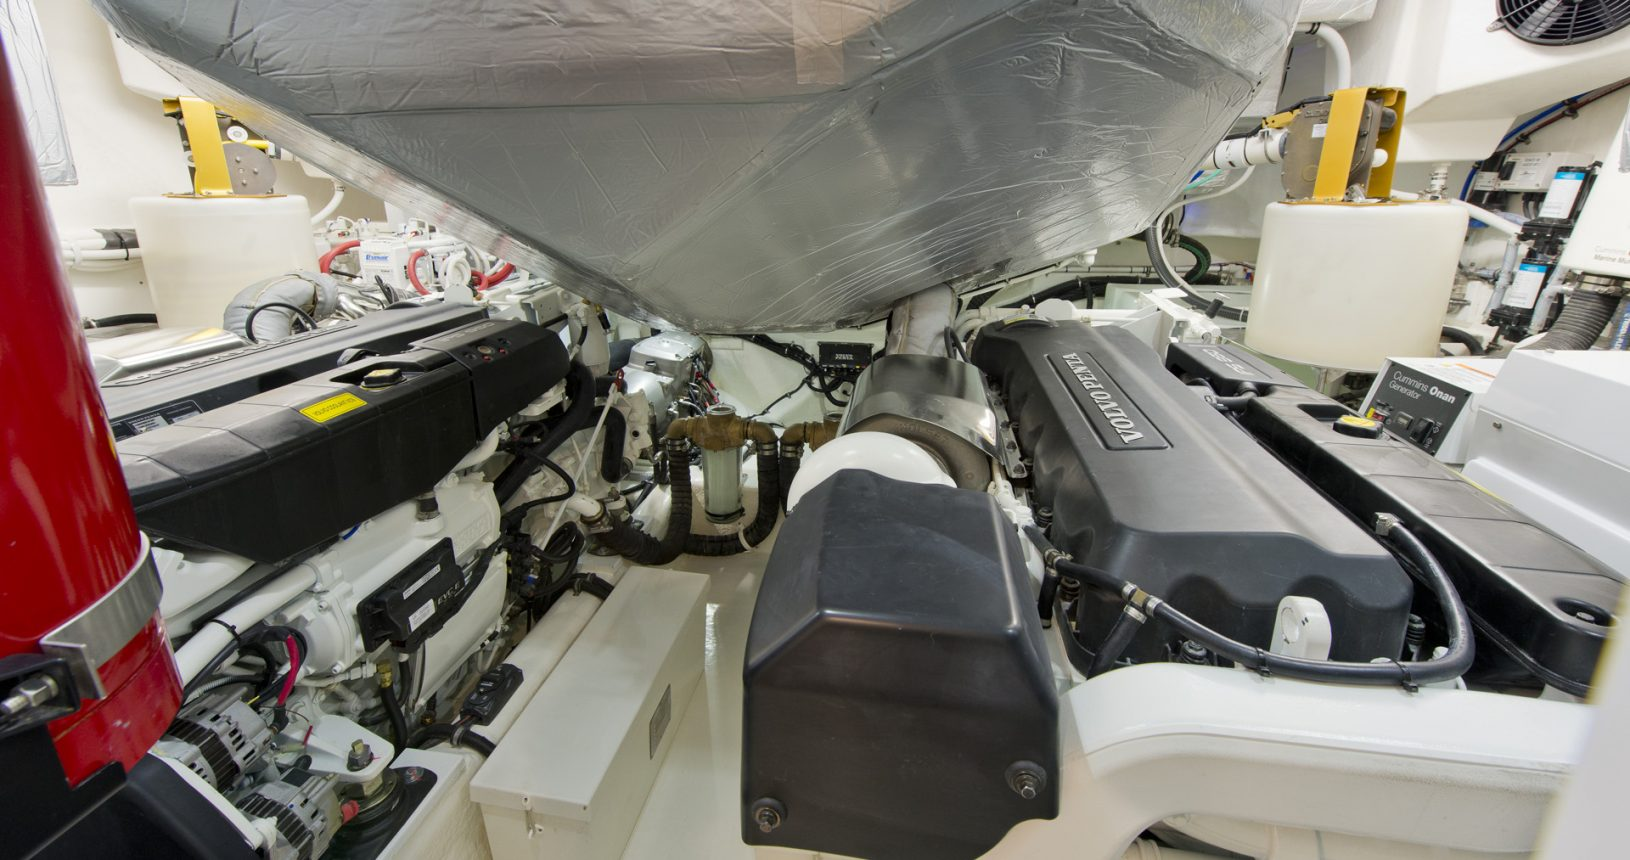 Riviera 6000 sports yacht for sale - engine